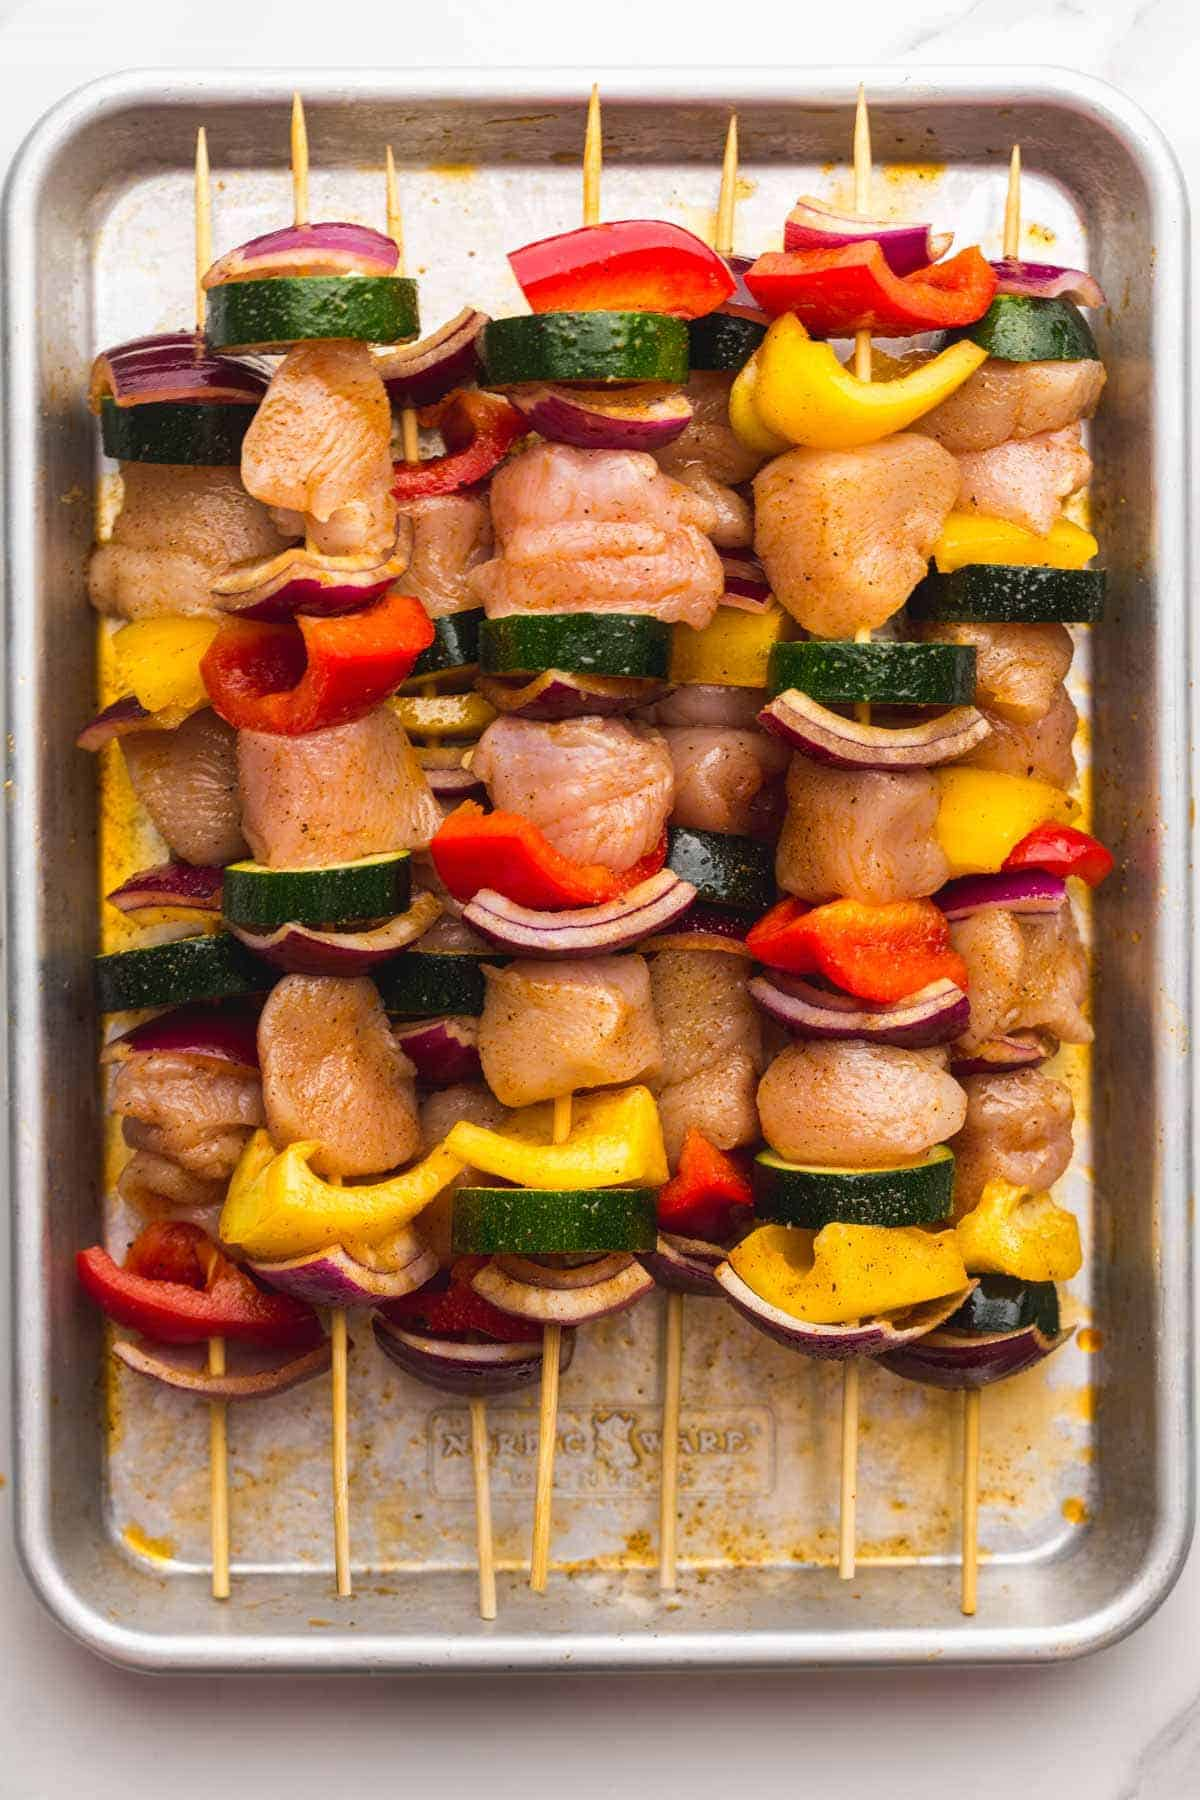 Threaded chicken and vegetable skewers on a sheet pan